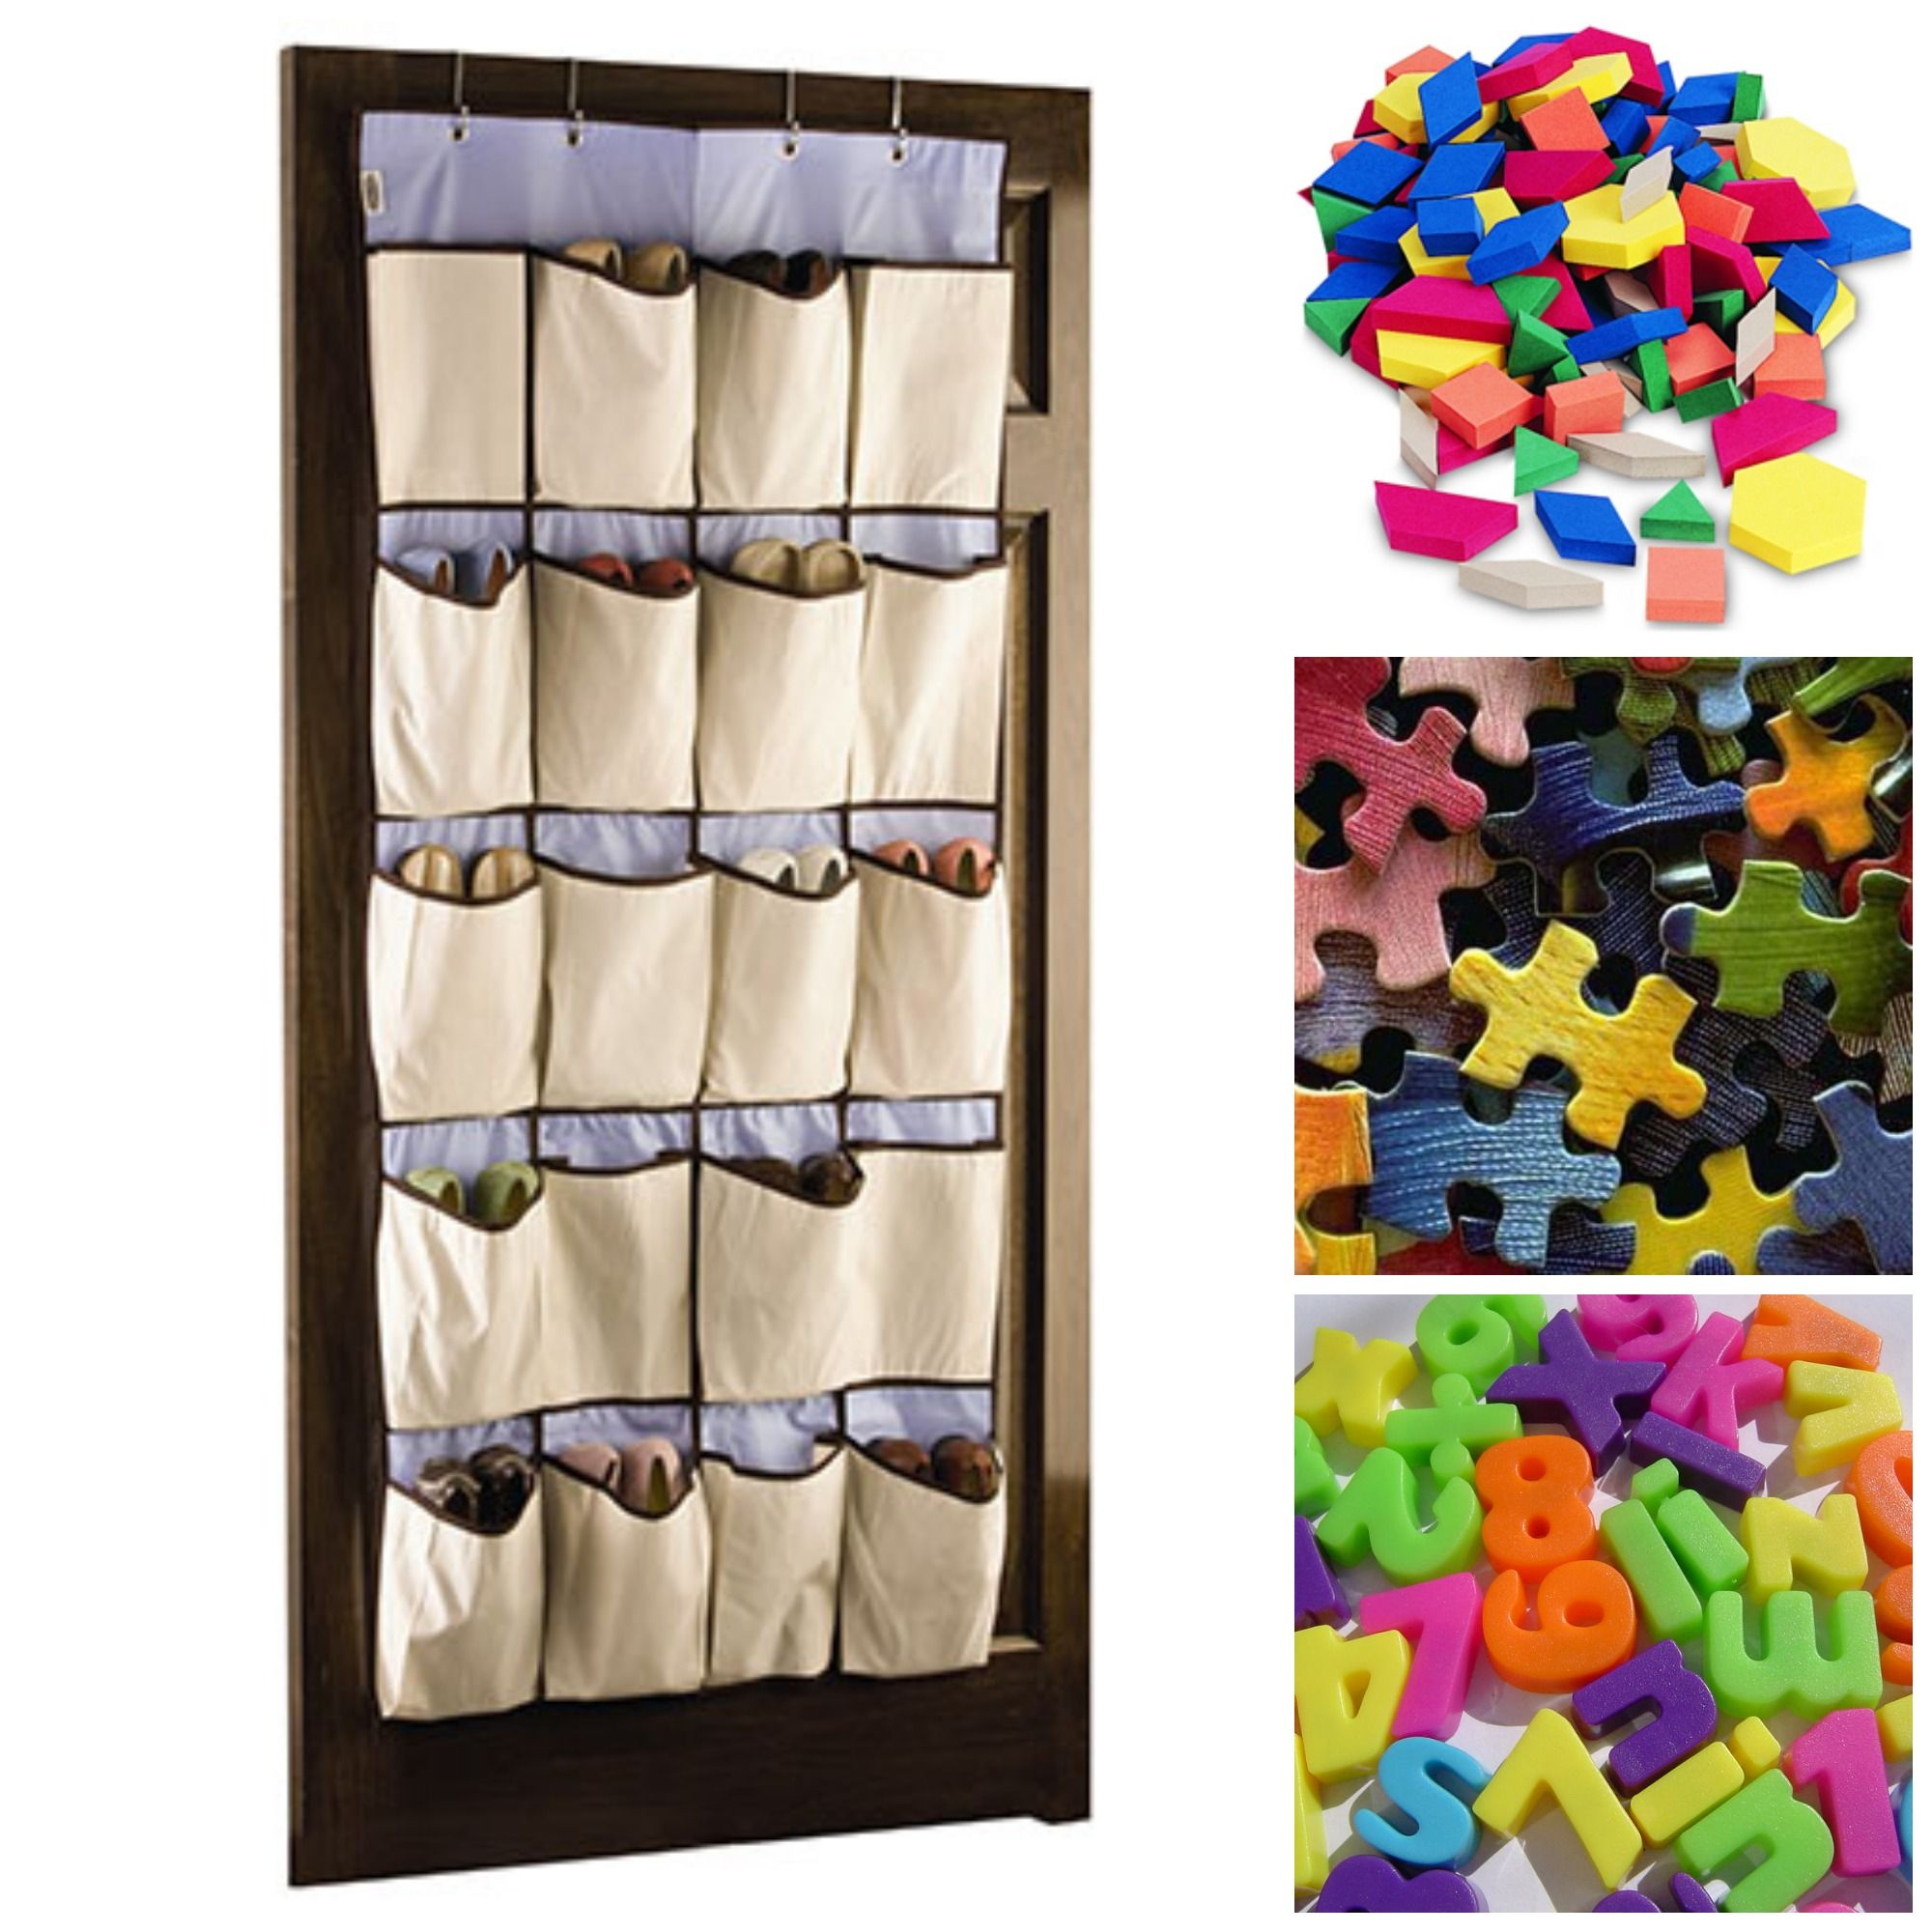 Clever Classroom Storage Solutions: Part 2 Hanging SHOE CADDIES are ...